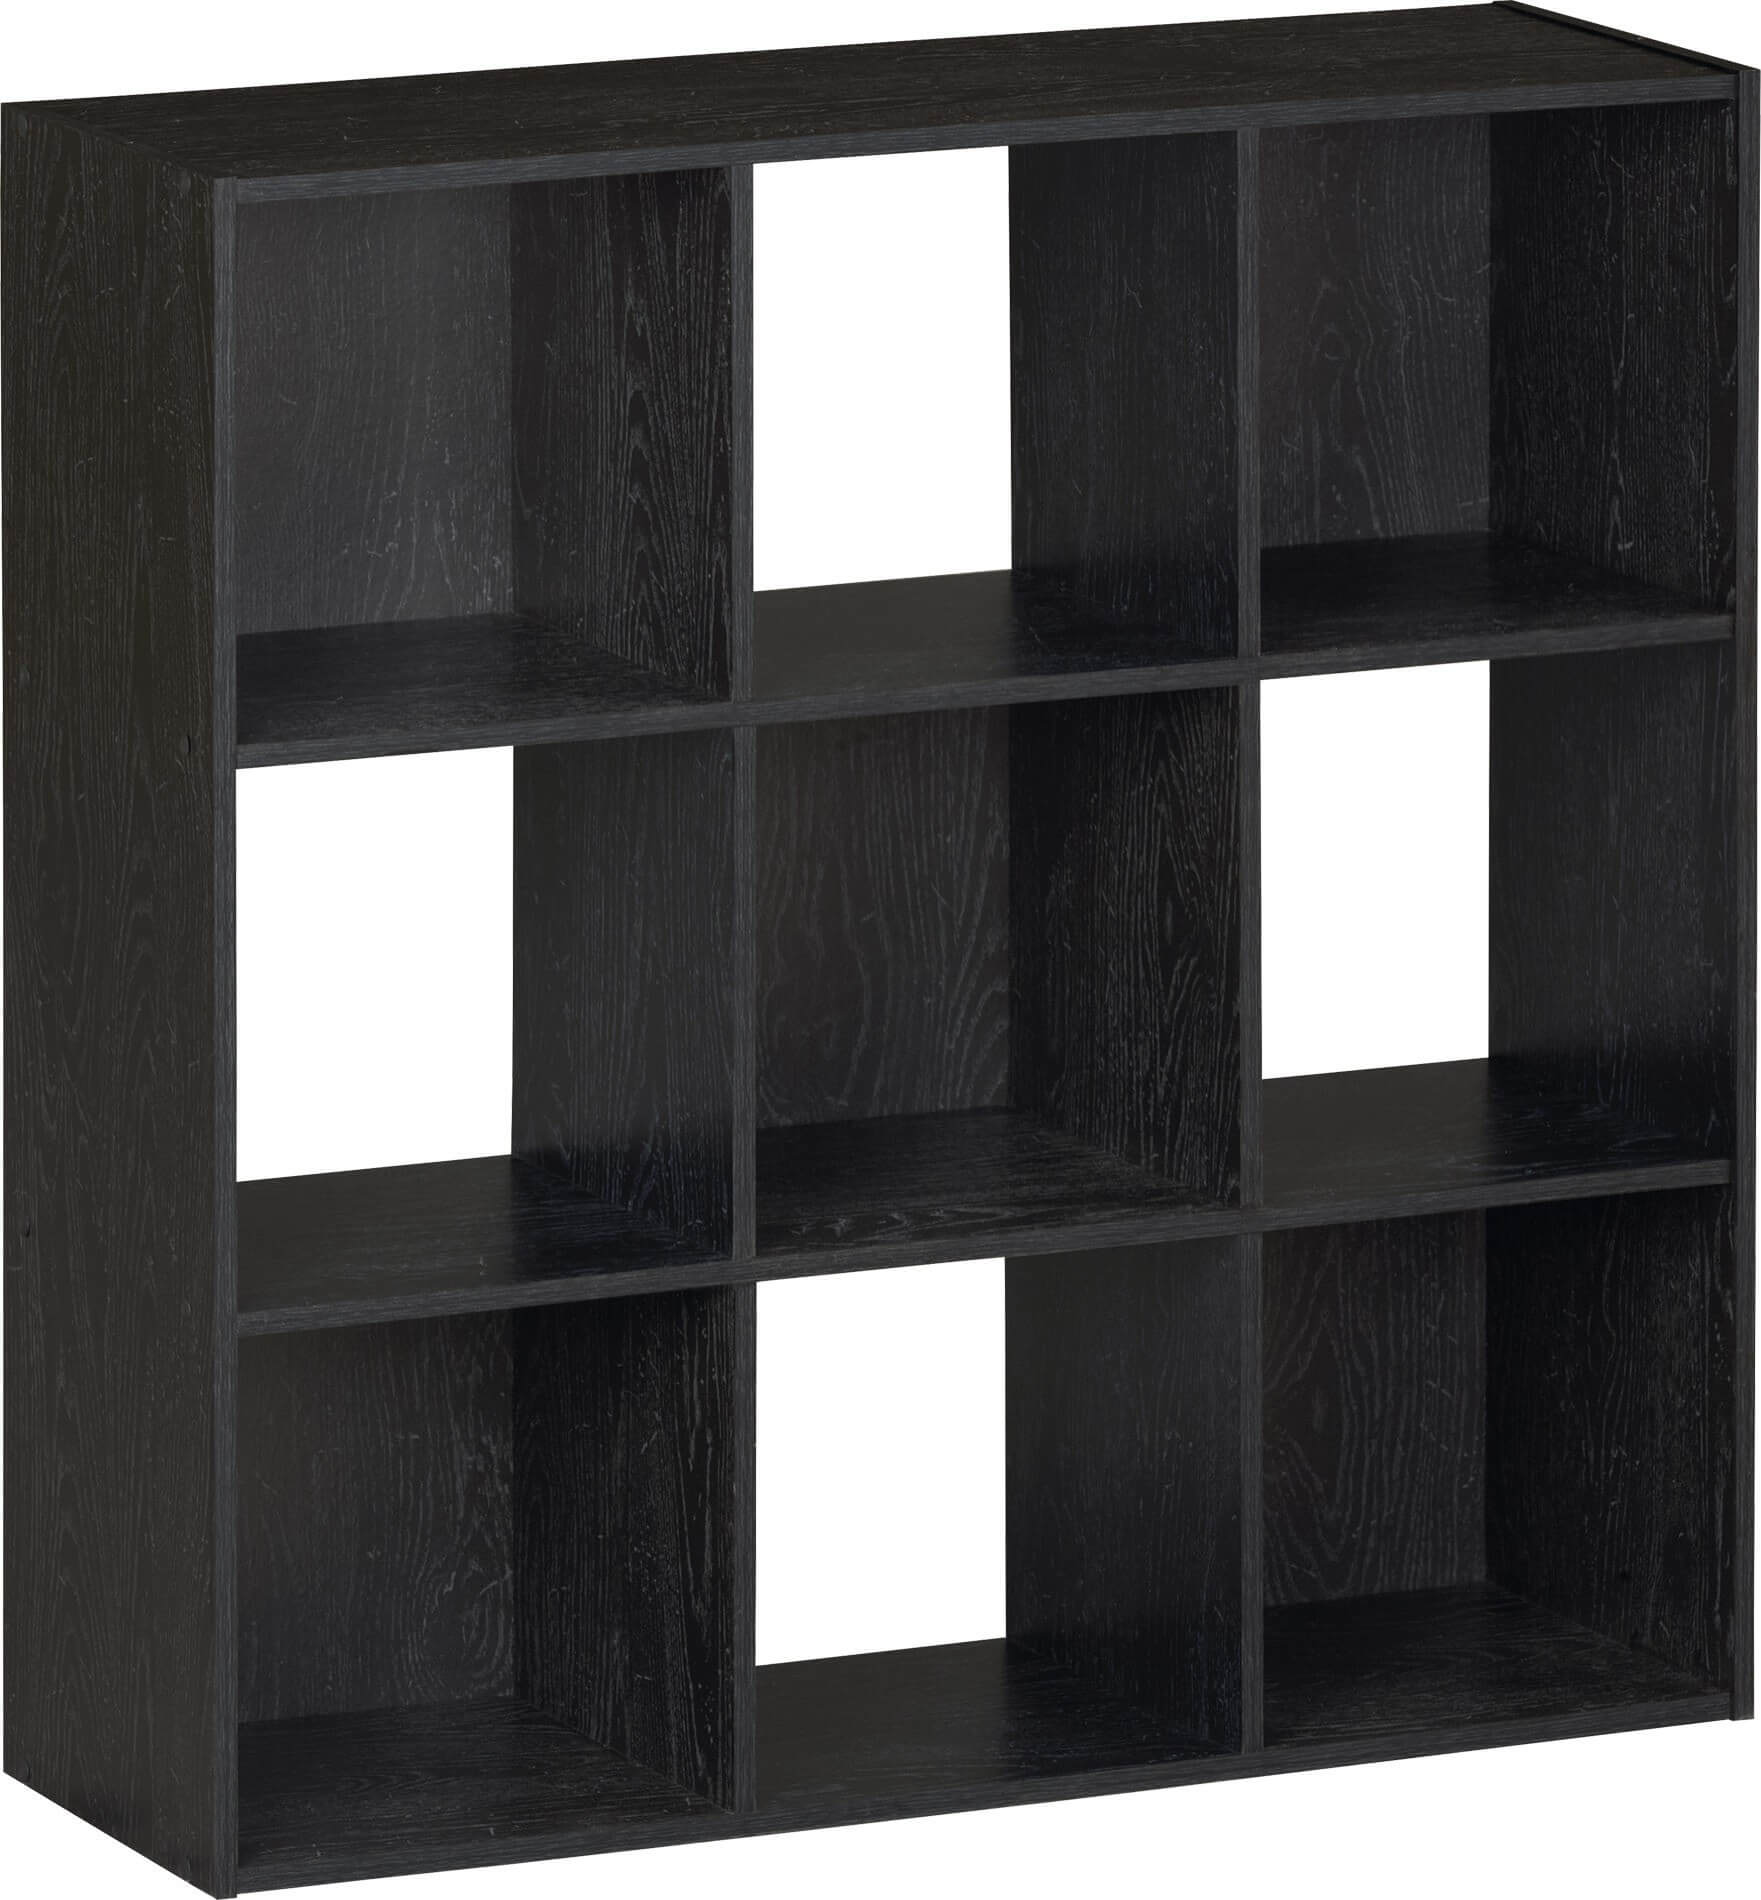 Twenty 9 Cube Bookcases Shelves And Storage Options Rh Homestratosphere Com